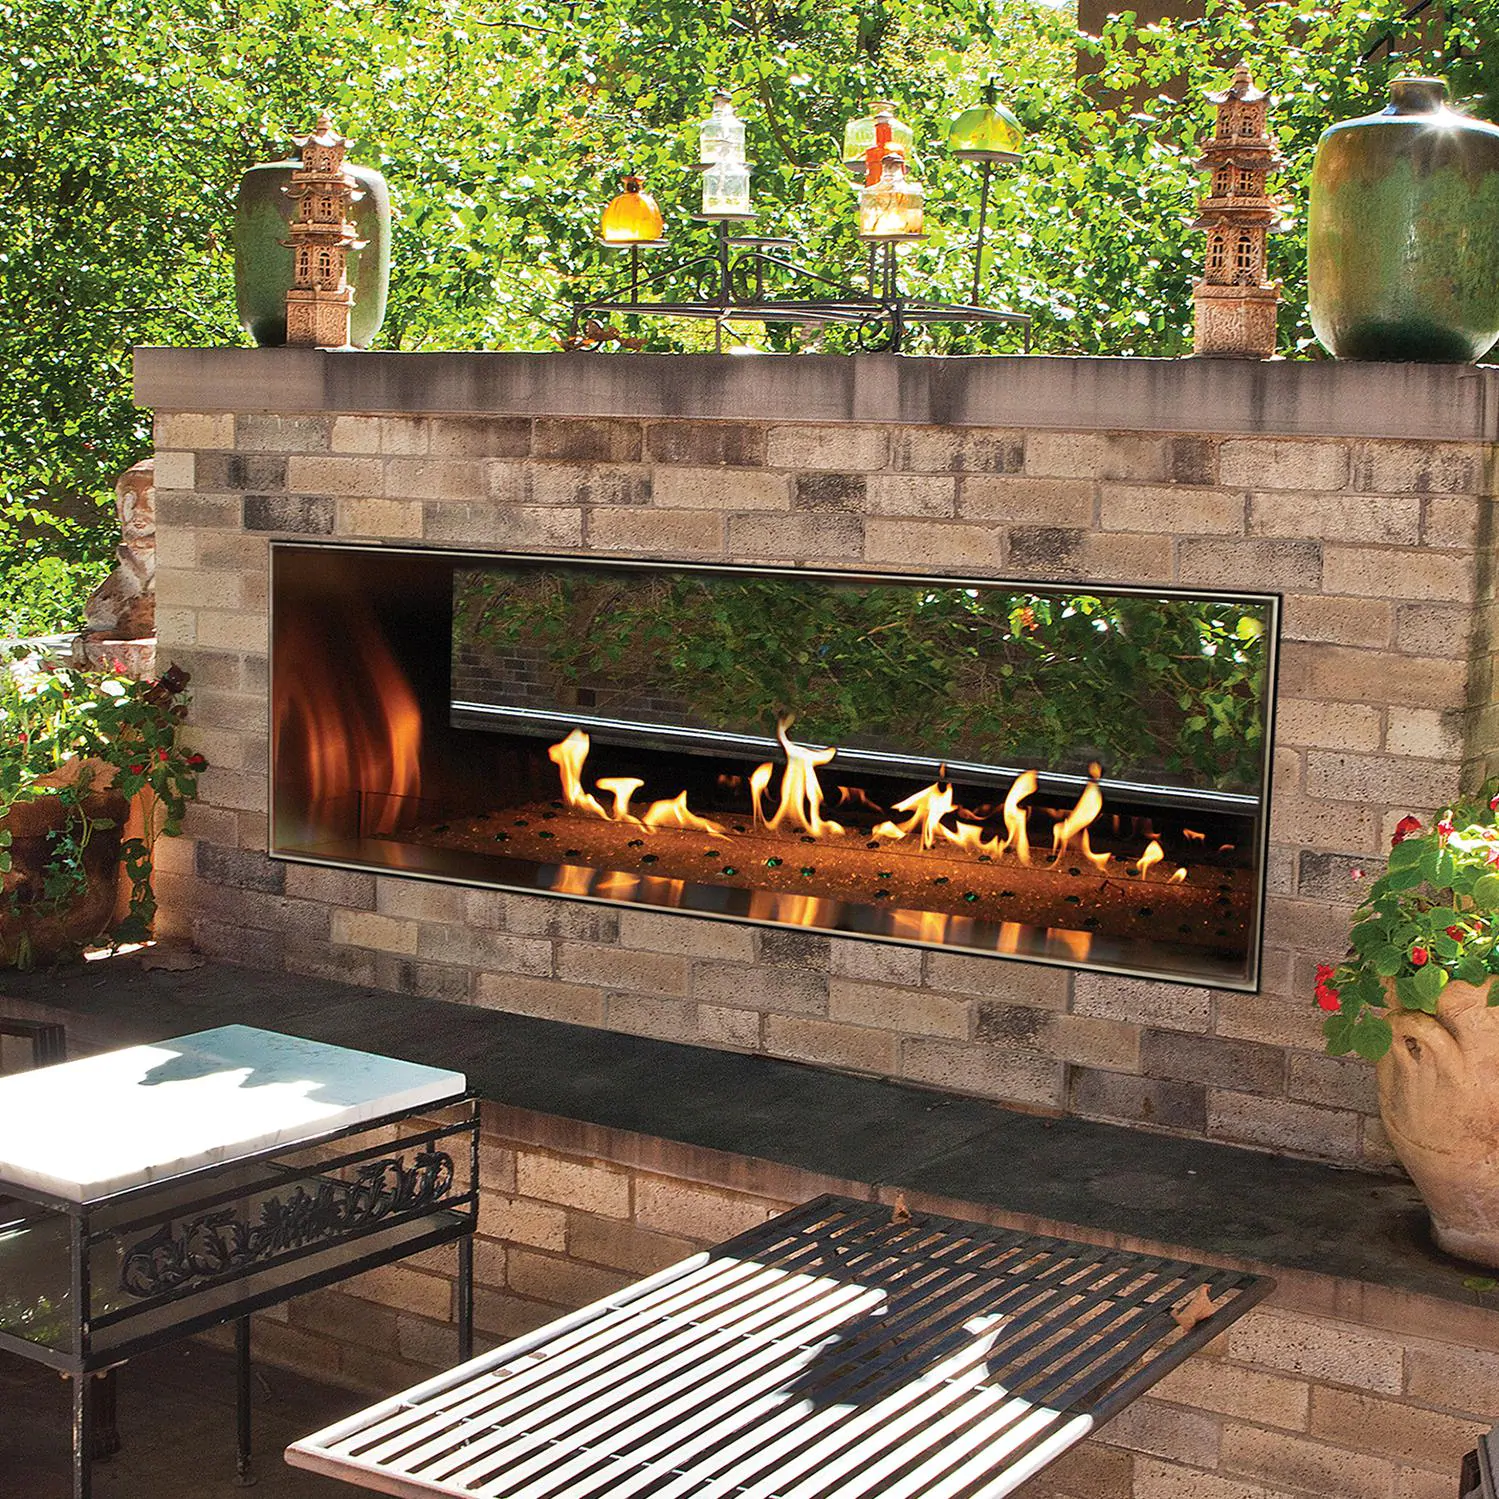 """White Mountain Hearth By Empire Carol Rose 48"""" Vent Free Propane Gas Outdoor Linear See-Through Fireplace W/ Manual Electronic Ignition & LED Light System - OLL48SP12SP"""